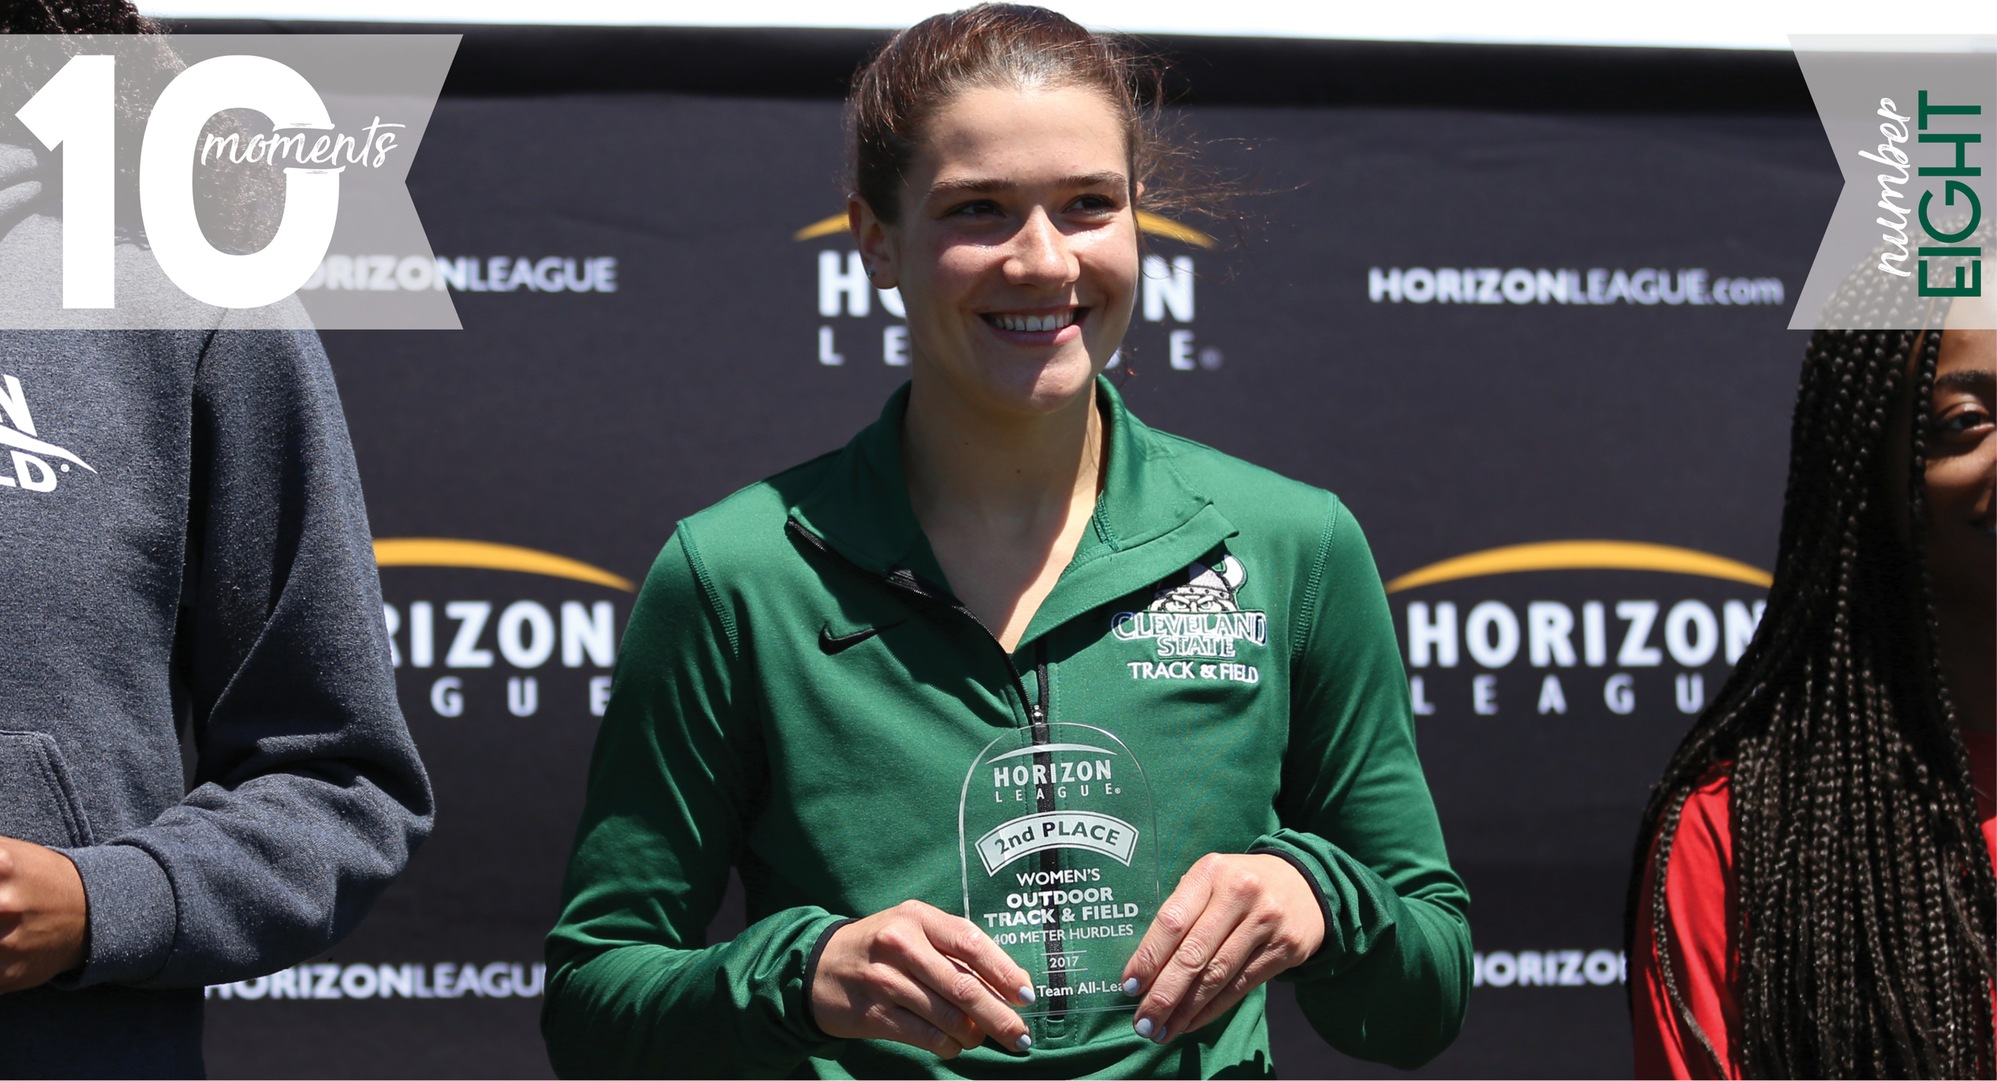 2016-17 CSU Athletics Top 10 Moments | #8 Derkacs Earns All-League Honors at HL Track & Field Championship